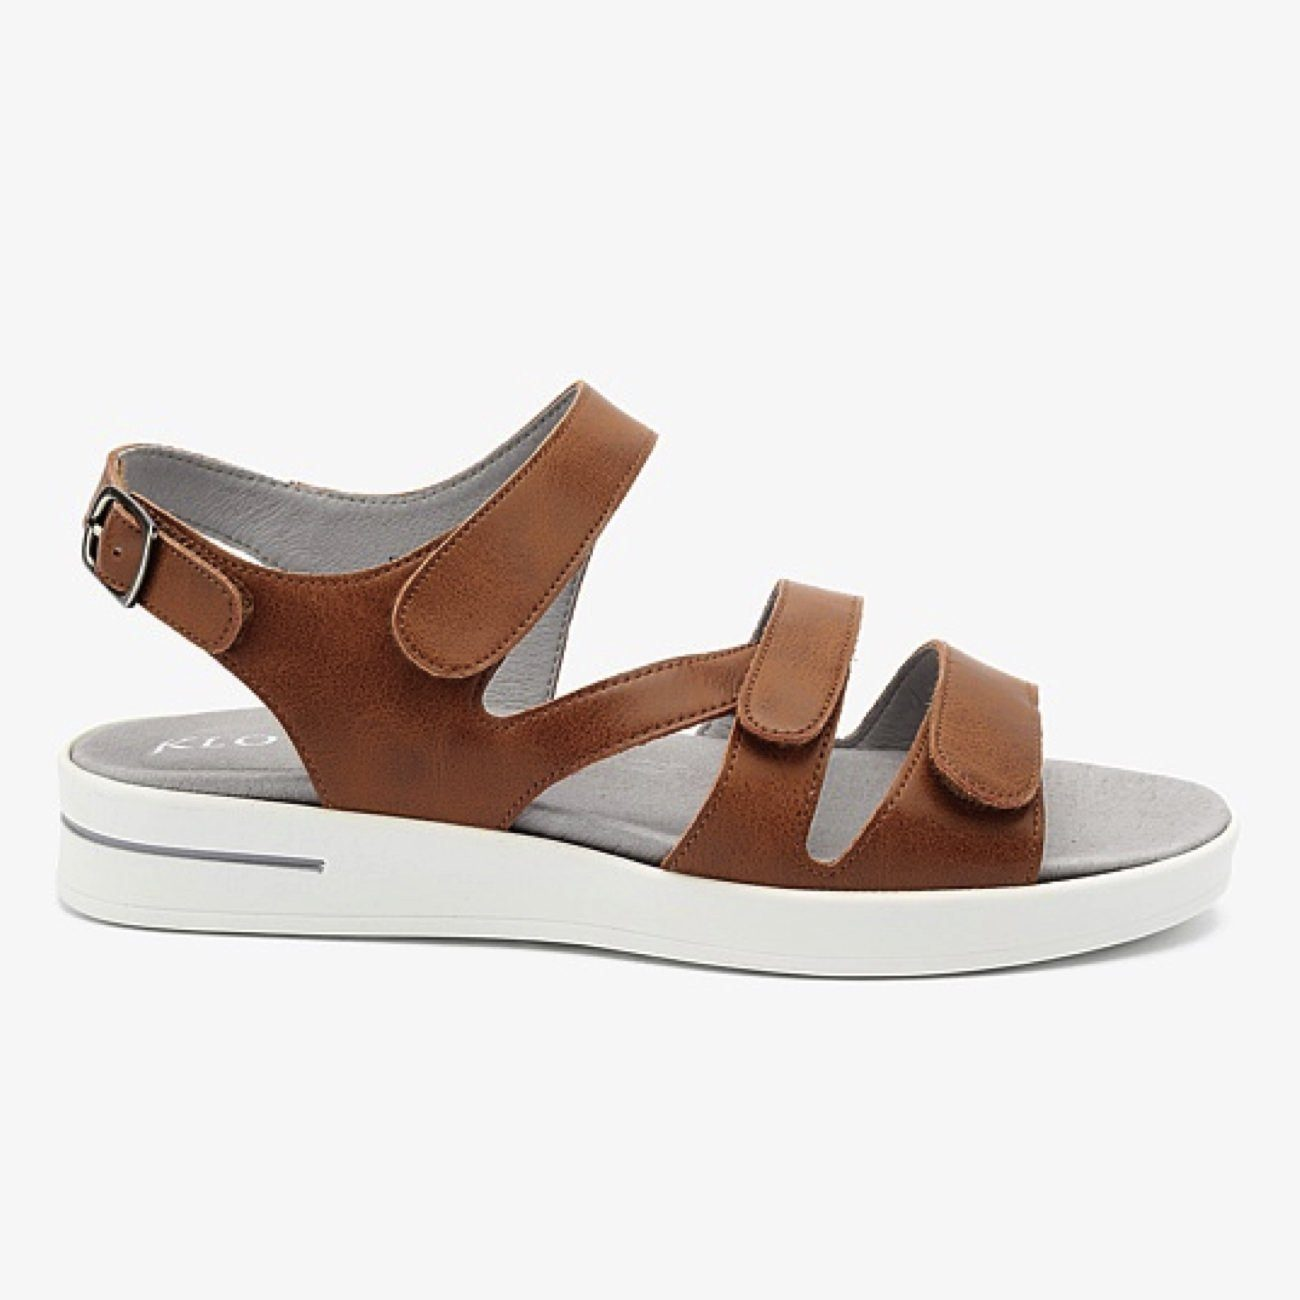 Klouds, Pamela, Sandals, Leather, Tan Sandals Klouds Tan 37